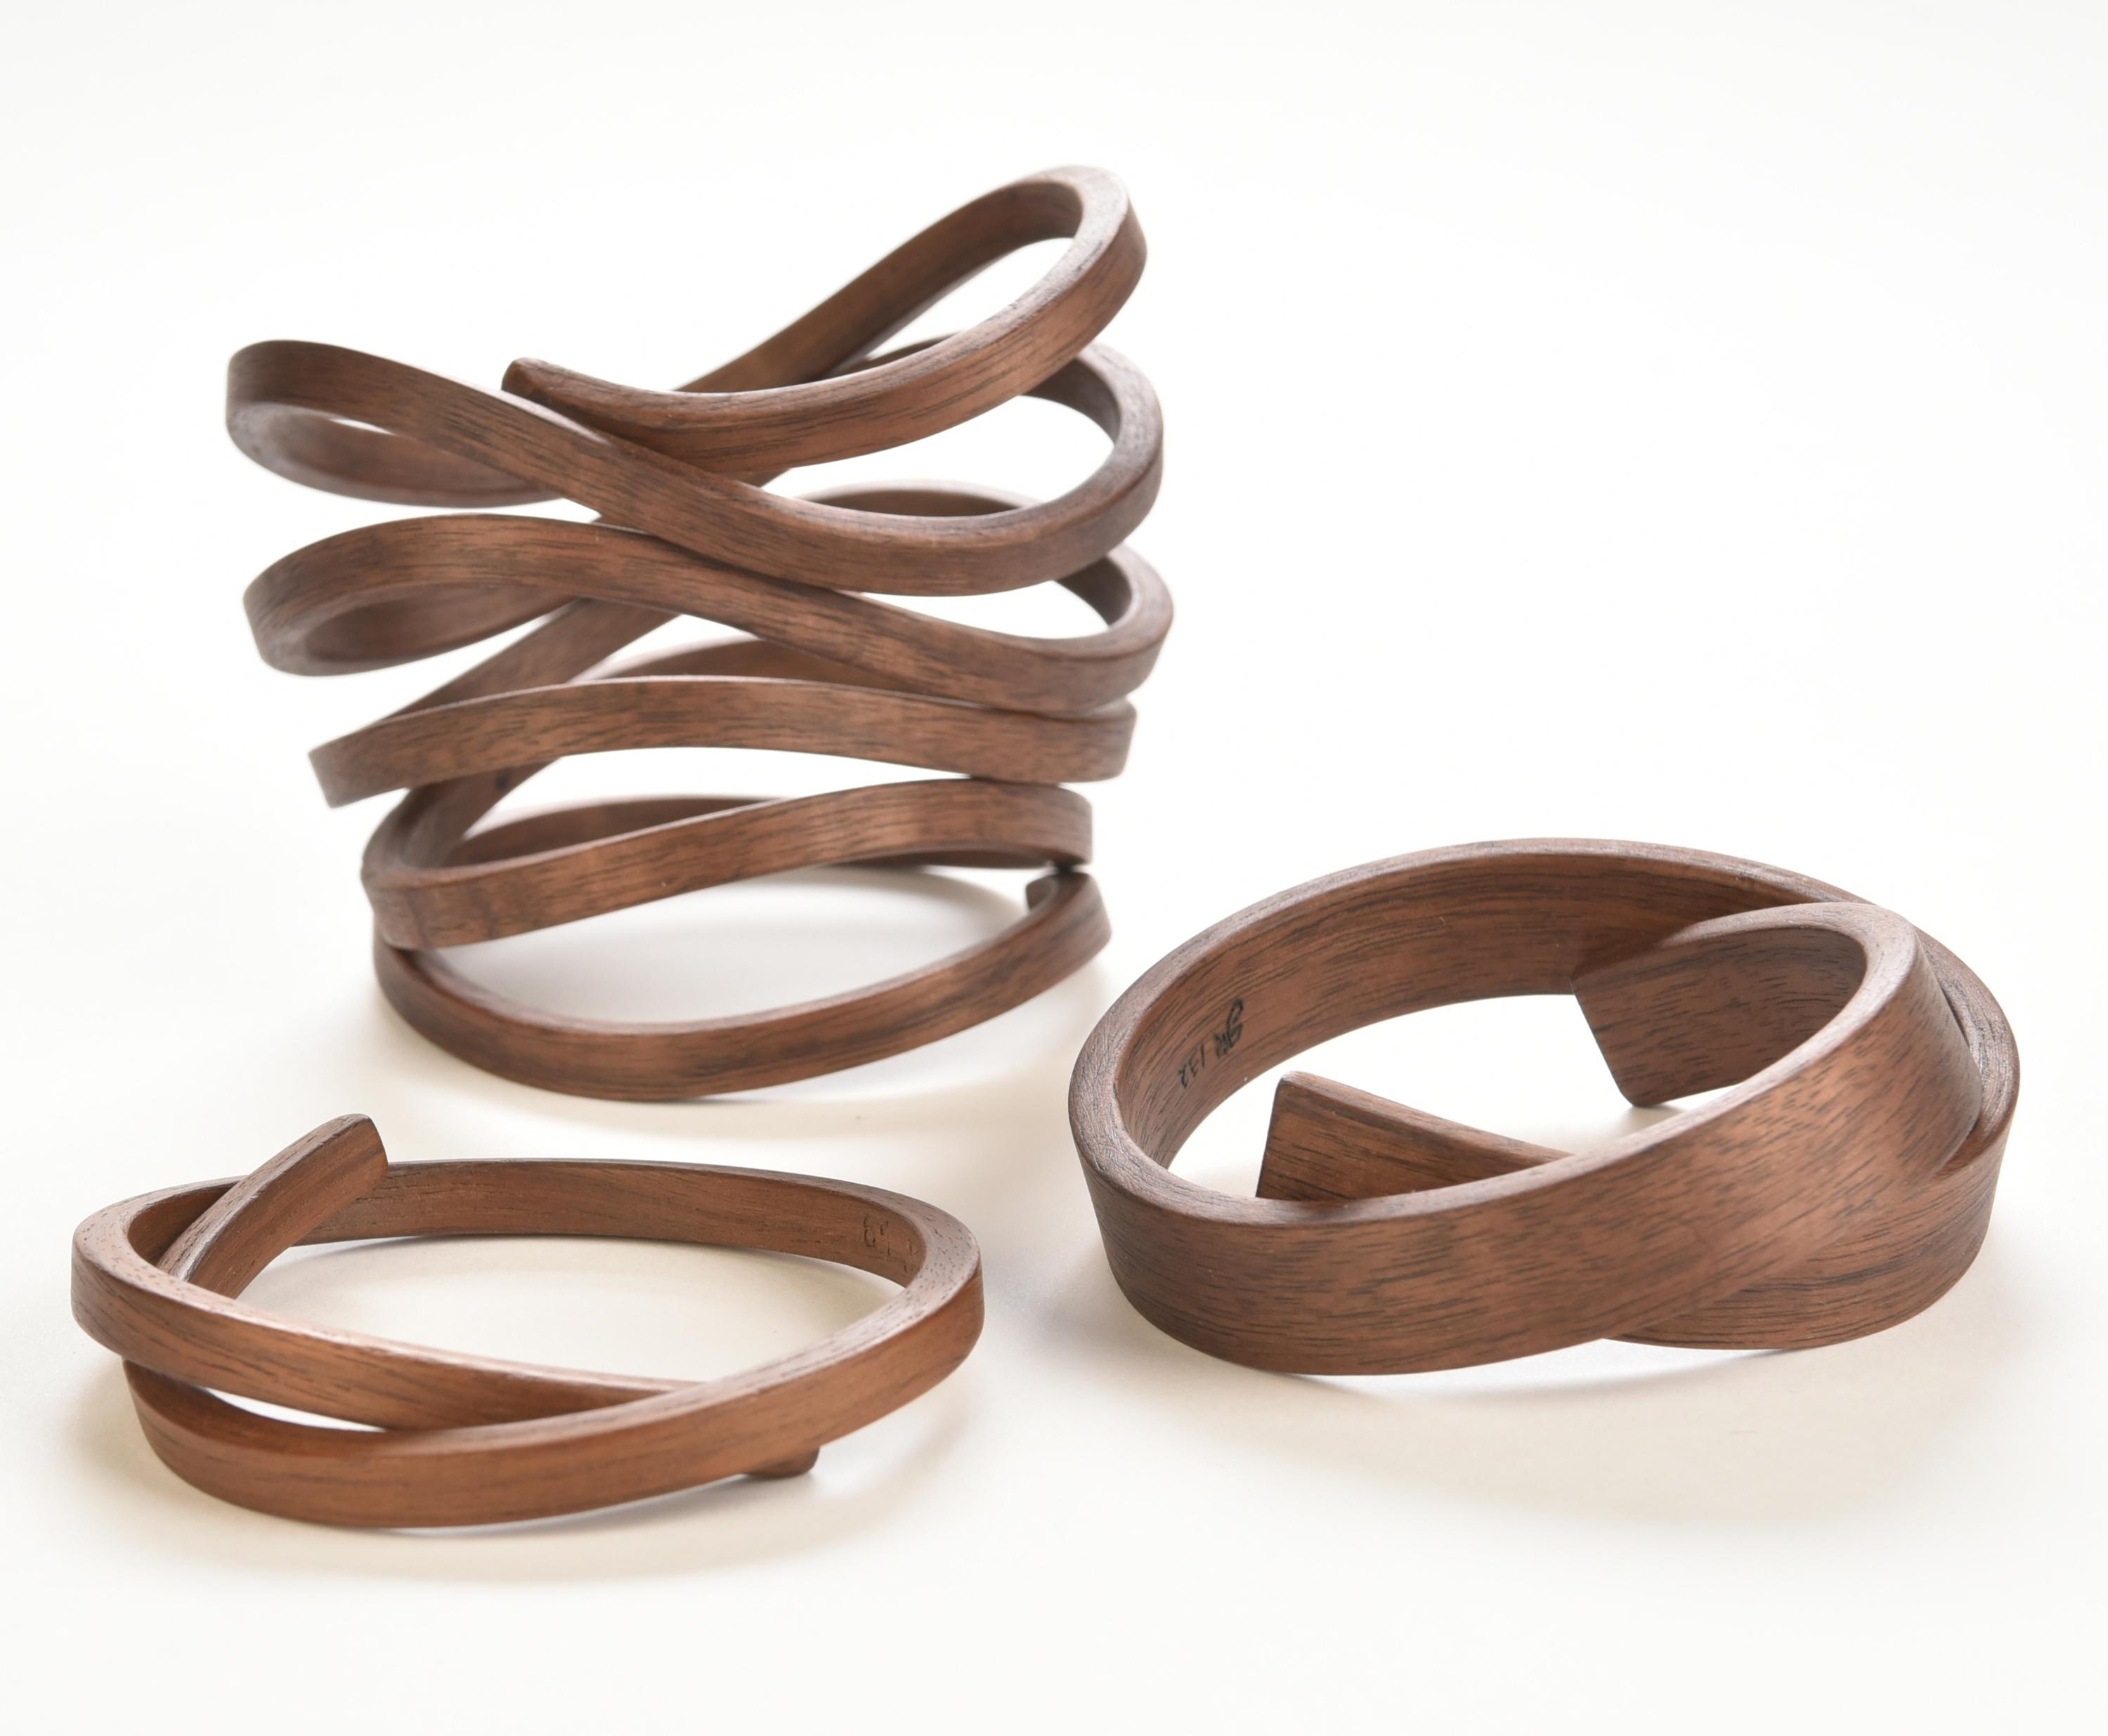 Three wooden bracelets of varying thicknesses are each shaped into distinct spirals.